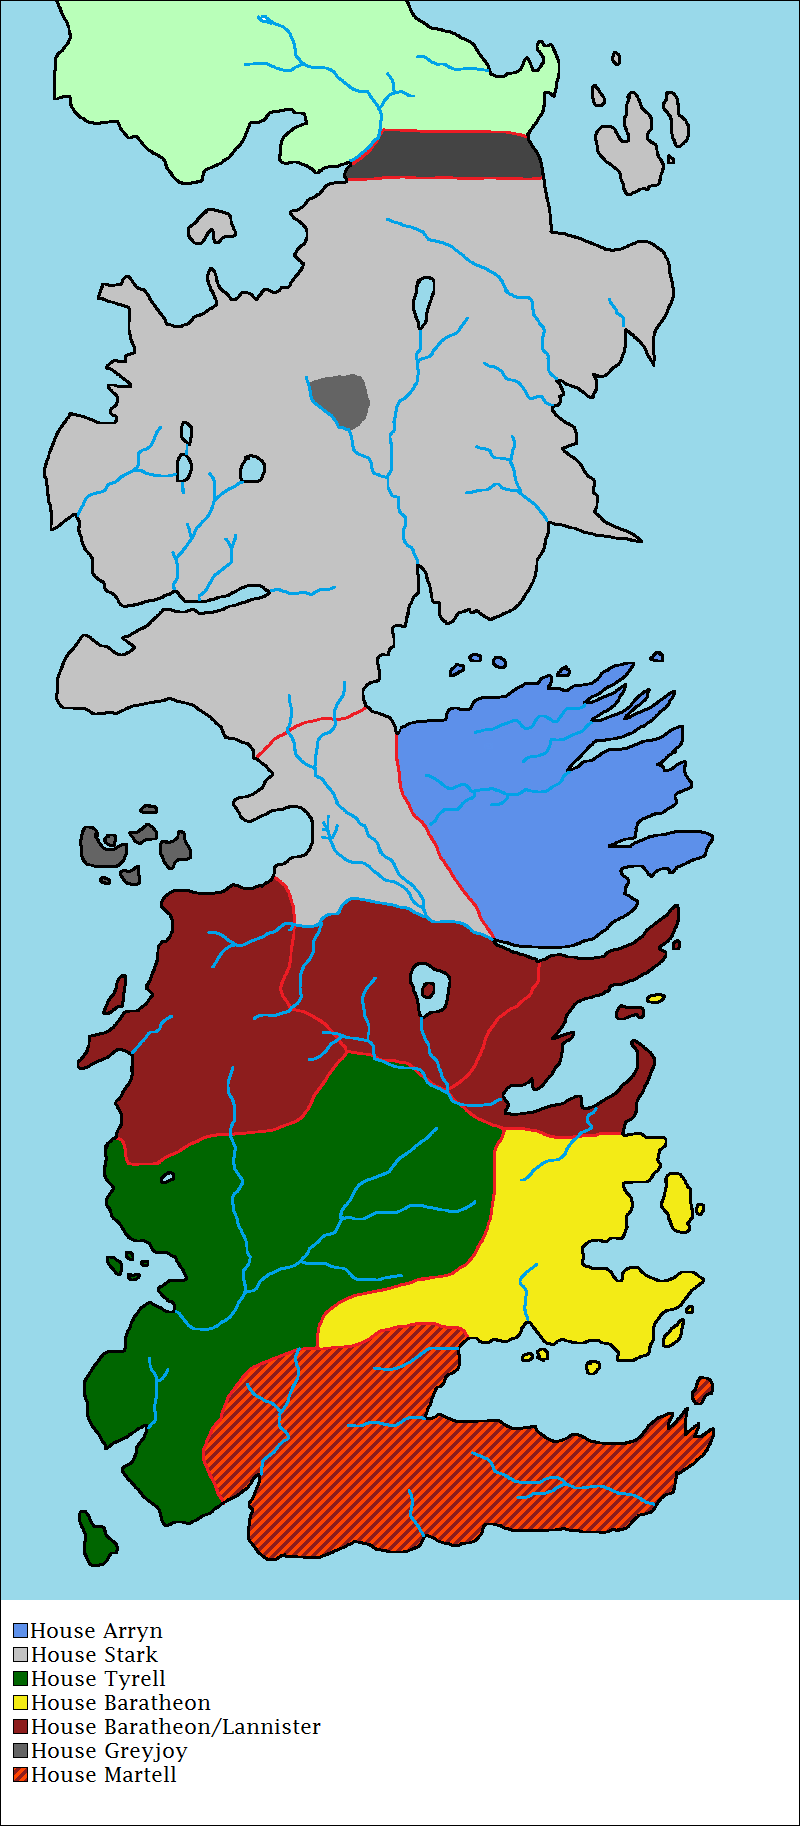 Rough political map of westeros by lamnay on deviantart rough political map of westeros by lamnay gumiabroncs Choice Image